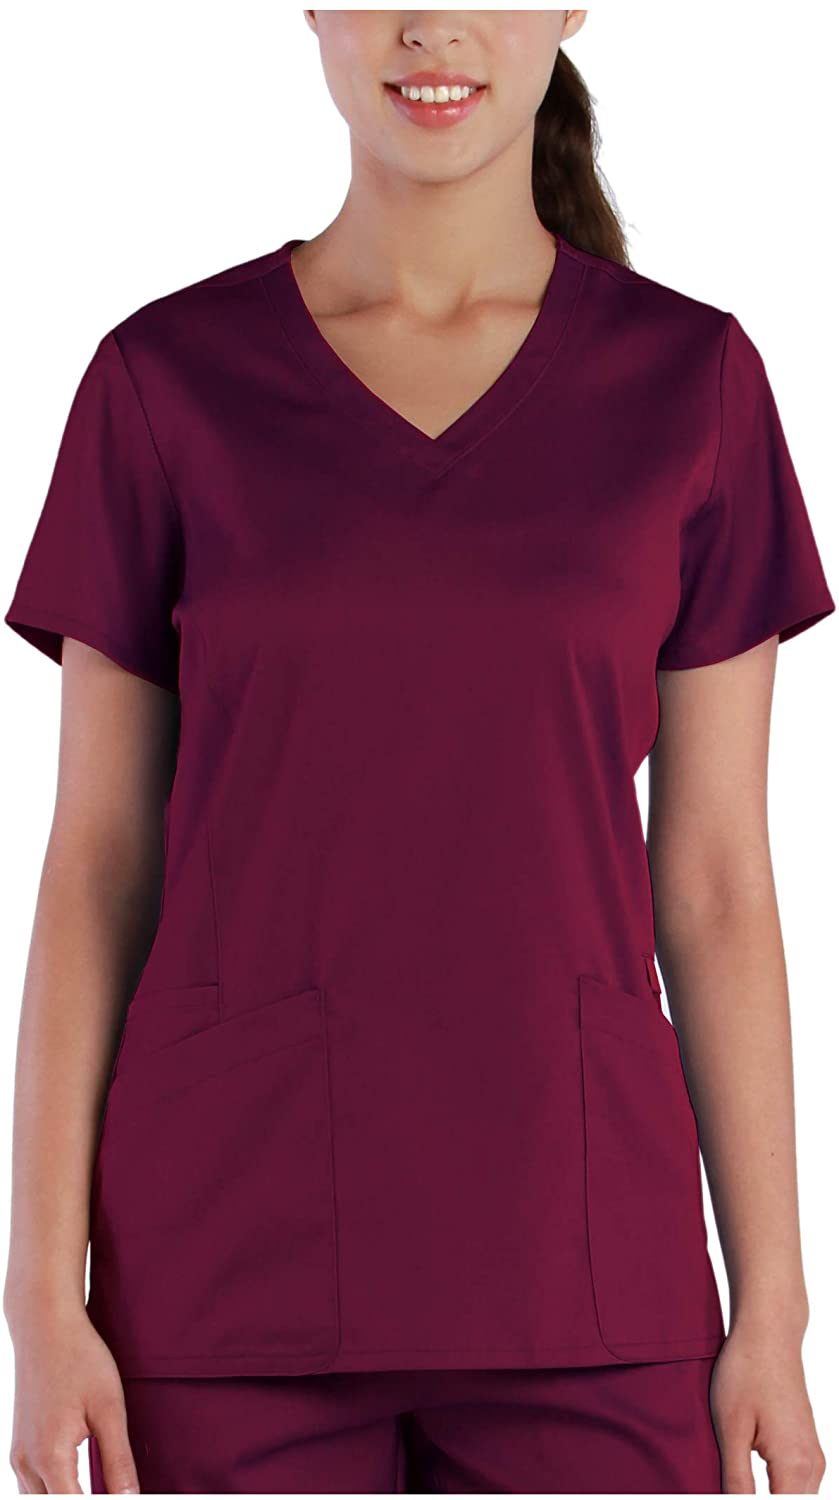 Tru Soft Womens Curved V-Neck Top 20201 (X-Small, Wine)